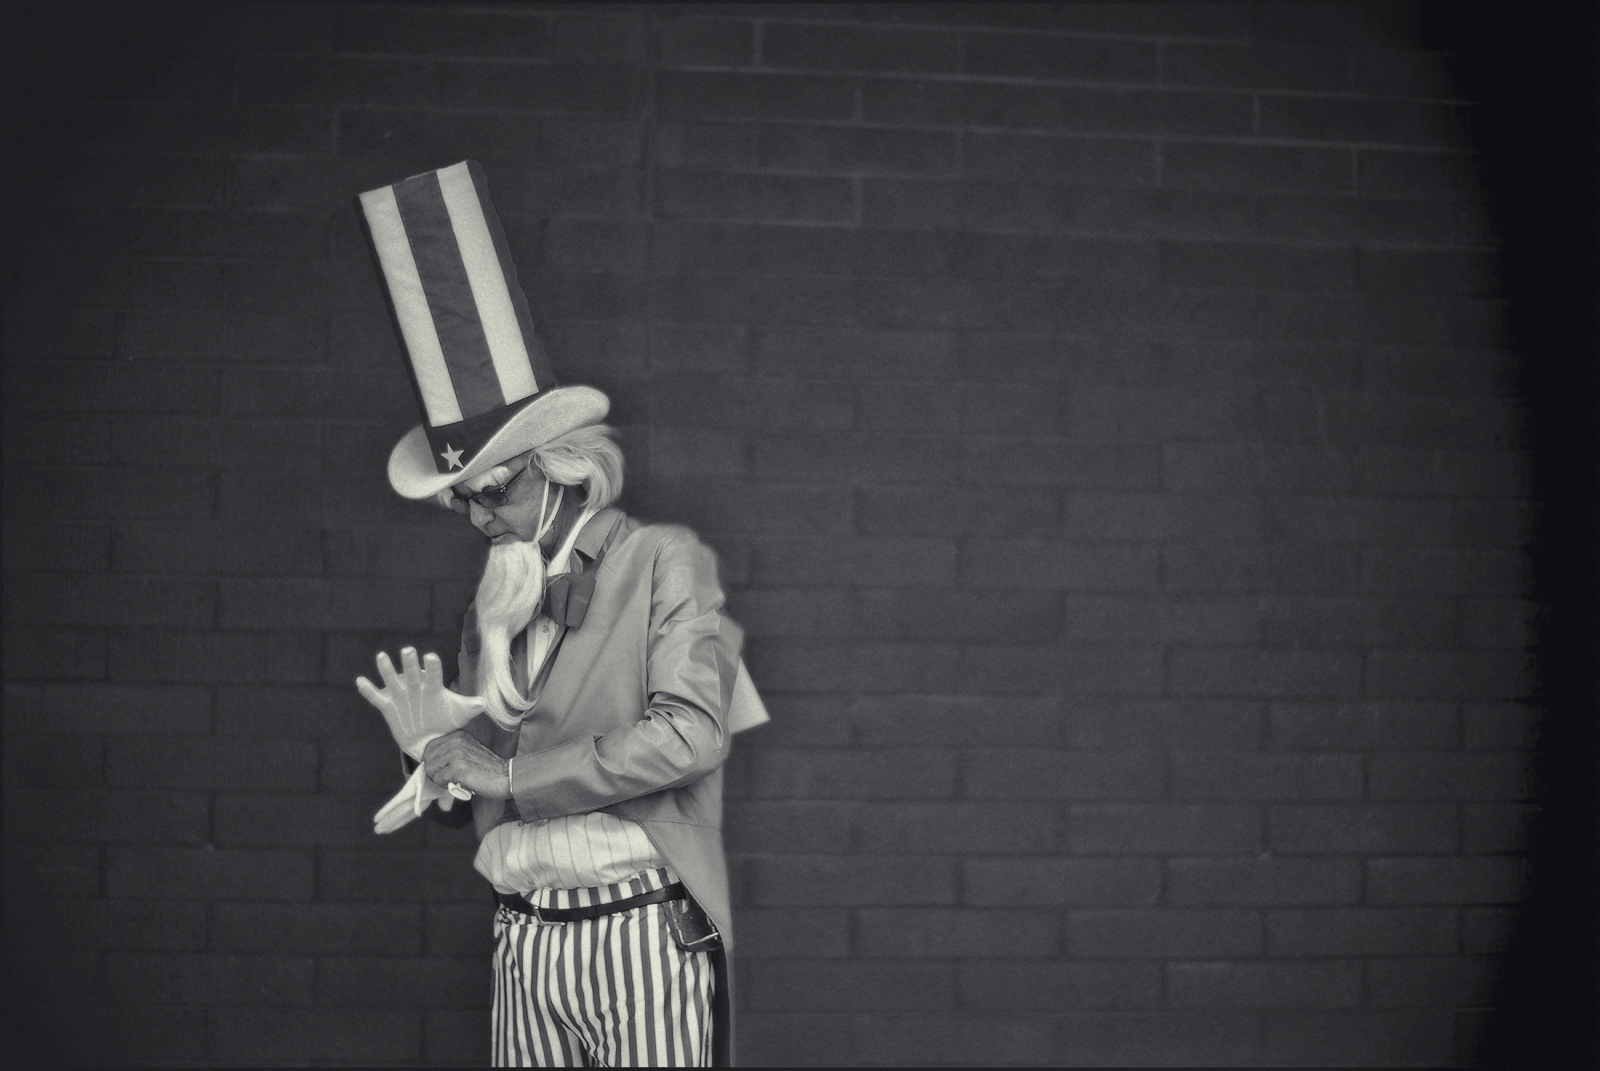 Ray Johnson, resident of Benson, Arizona as Uncle Sam during the 4th of July celebration in Benson, Arizona 4 July. 2018